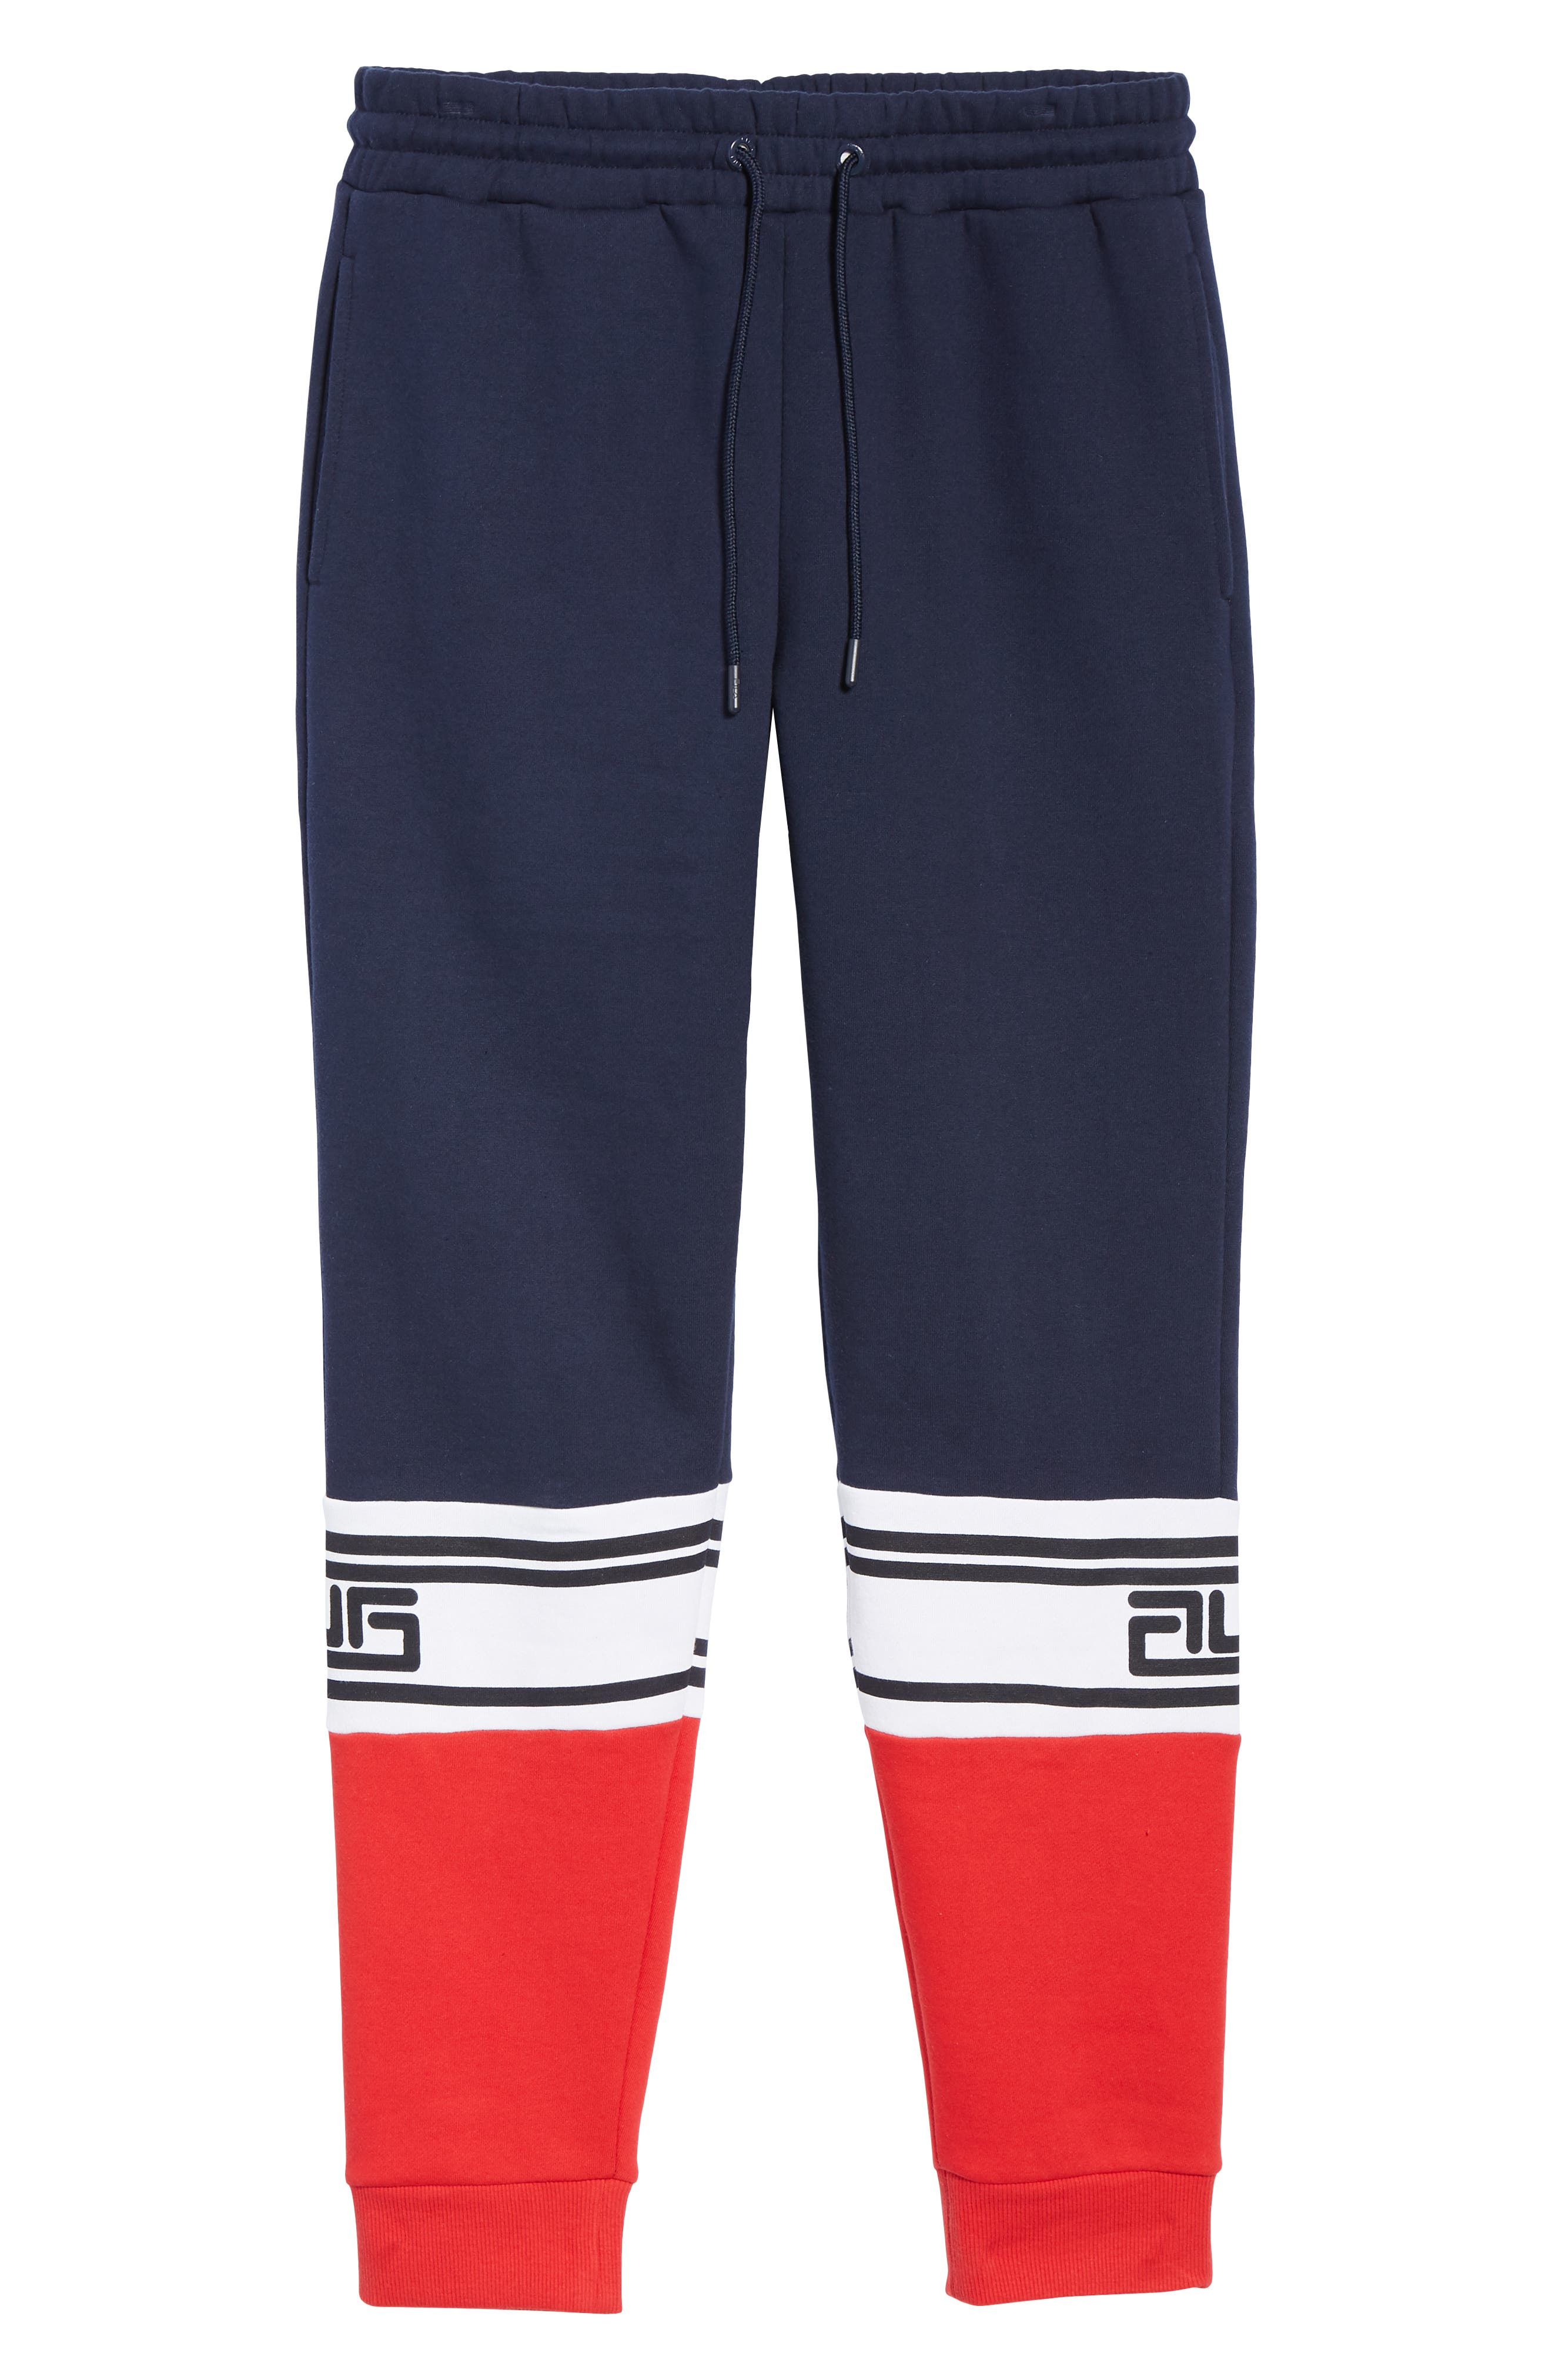 Tricolor Jogger Pants,                             Alternate thumbnail 6, color,                             PEACOAT/ CHINESE RED